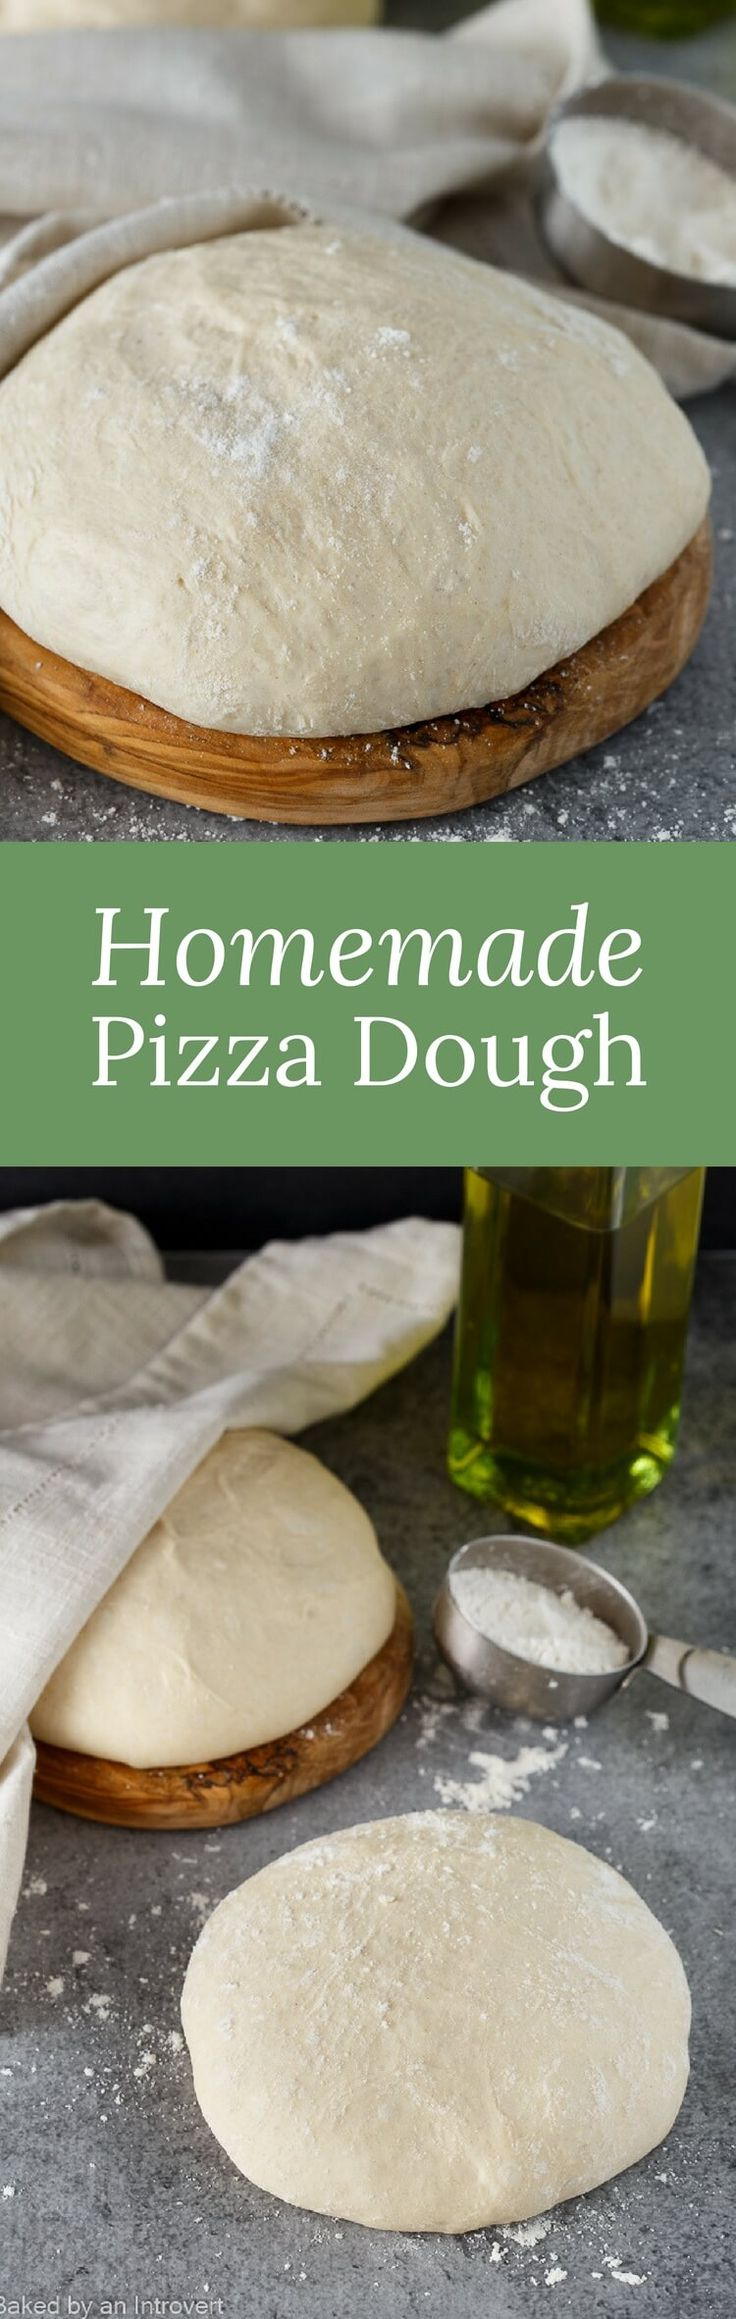 Enjoy pizza at home with this all-time favorite recipe for homemade pizza dough. You will never need another recipe! #pizza #dough #dinner